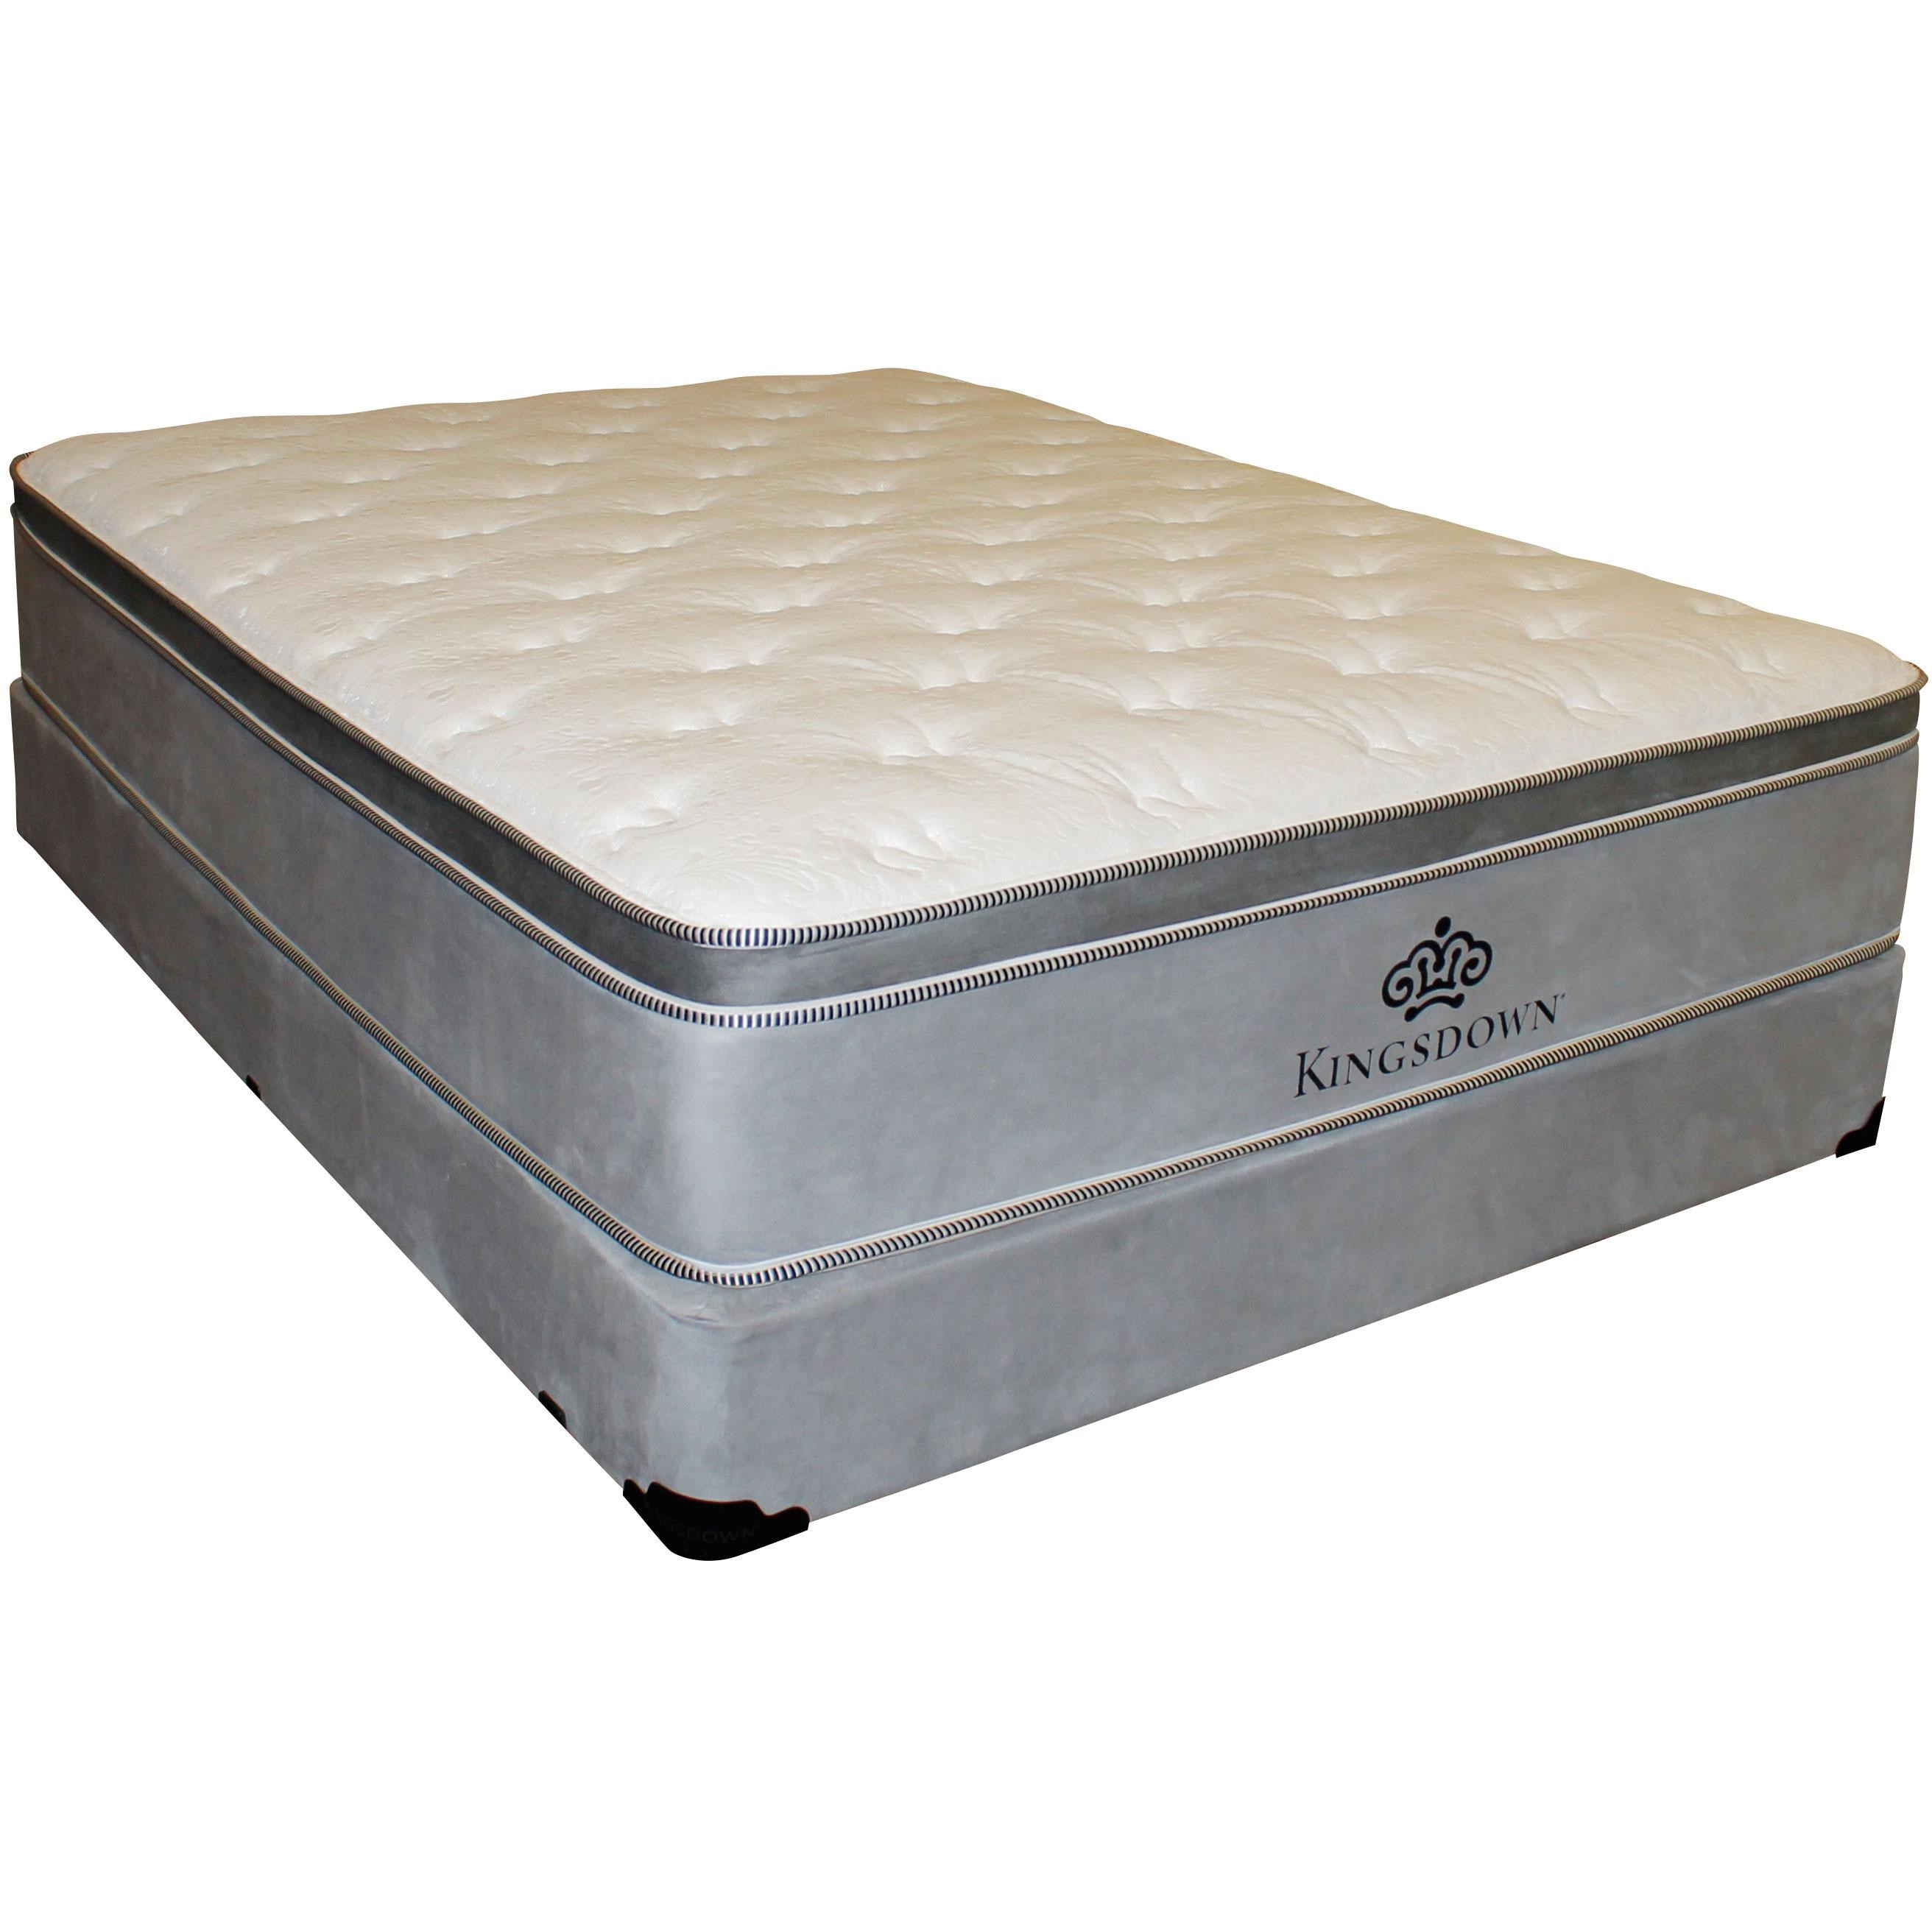 Pillow Top Mattress Queen King Koil Perfect Response Elite Lakeside Pillowtop Mattress